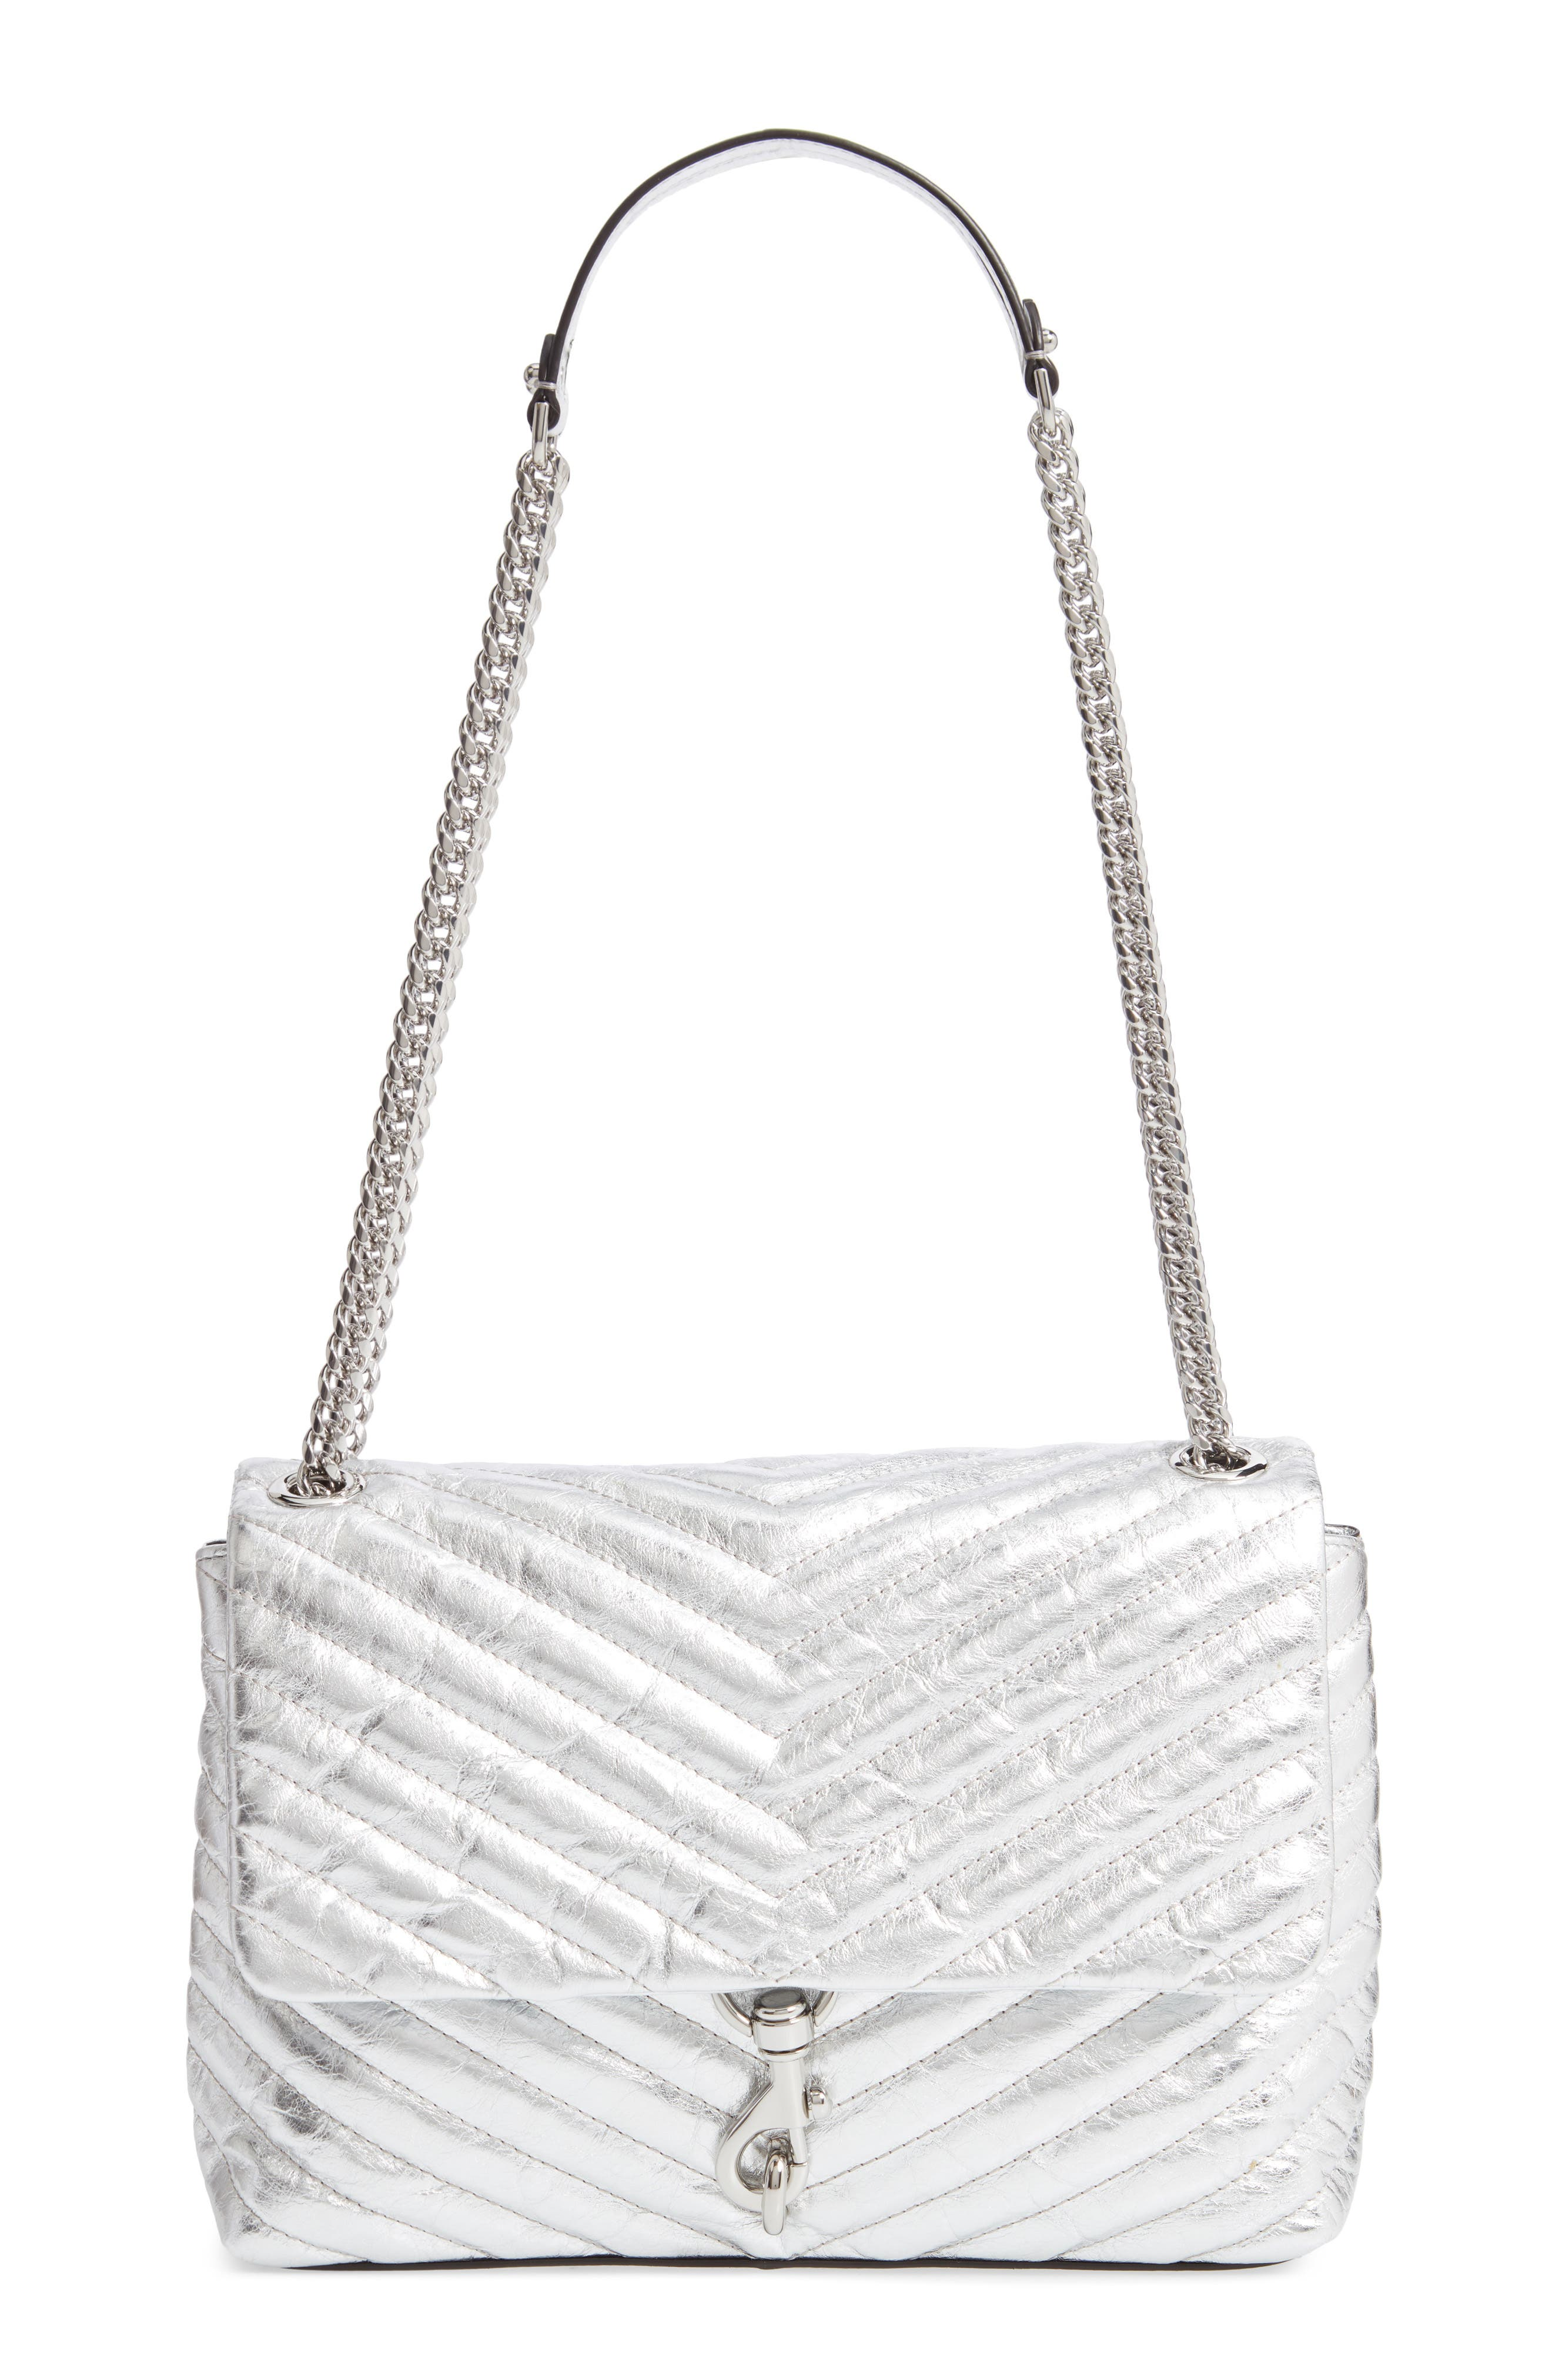 Edie Metallic Leather Shoulder Bag,                             Main thumbnail 1, color,                             SILVER